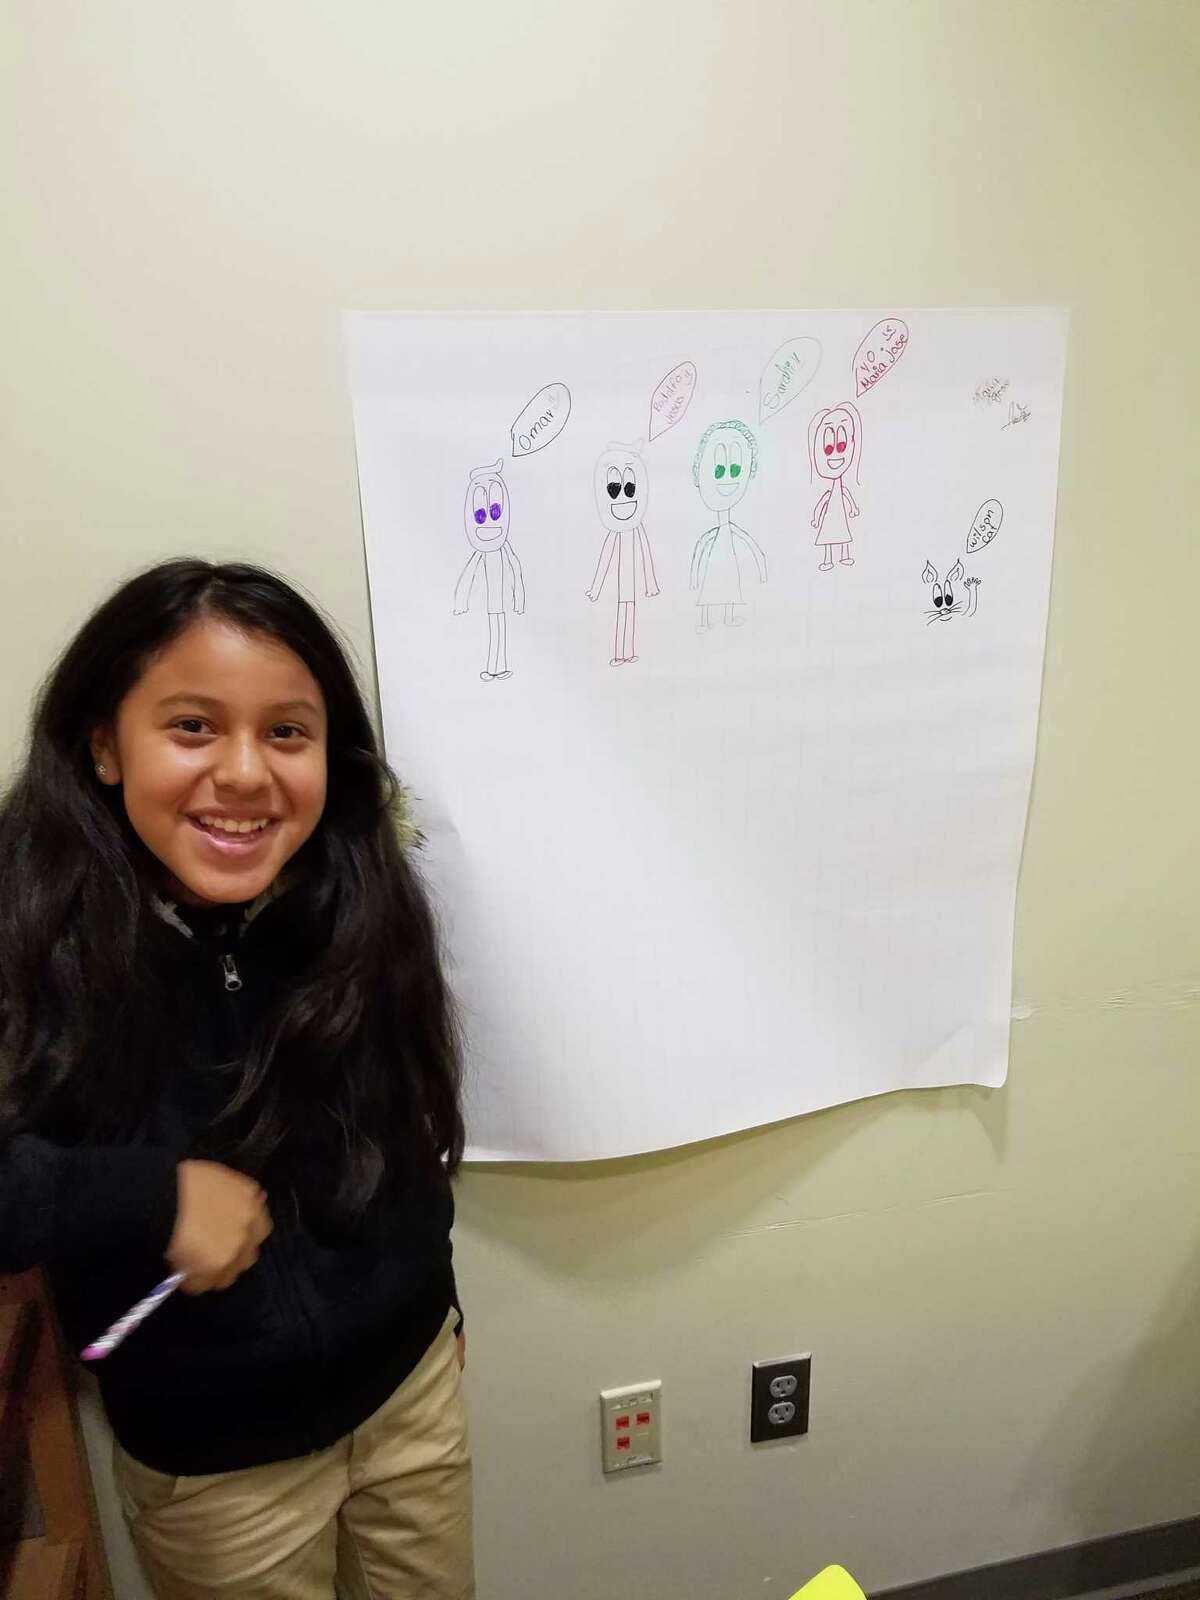 Spring Forest Middle School is the school to numerous refugee children and thus a program has been implemented to help those students adjust to the education system.